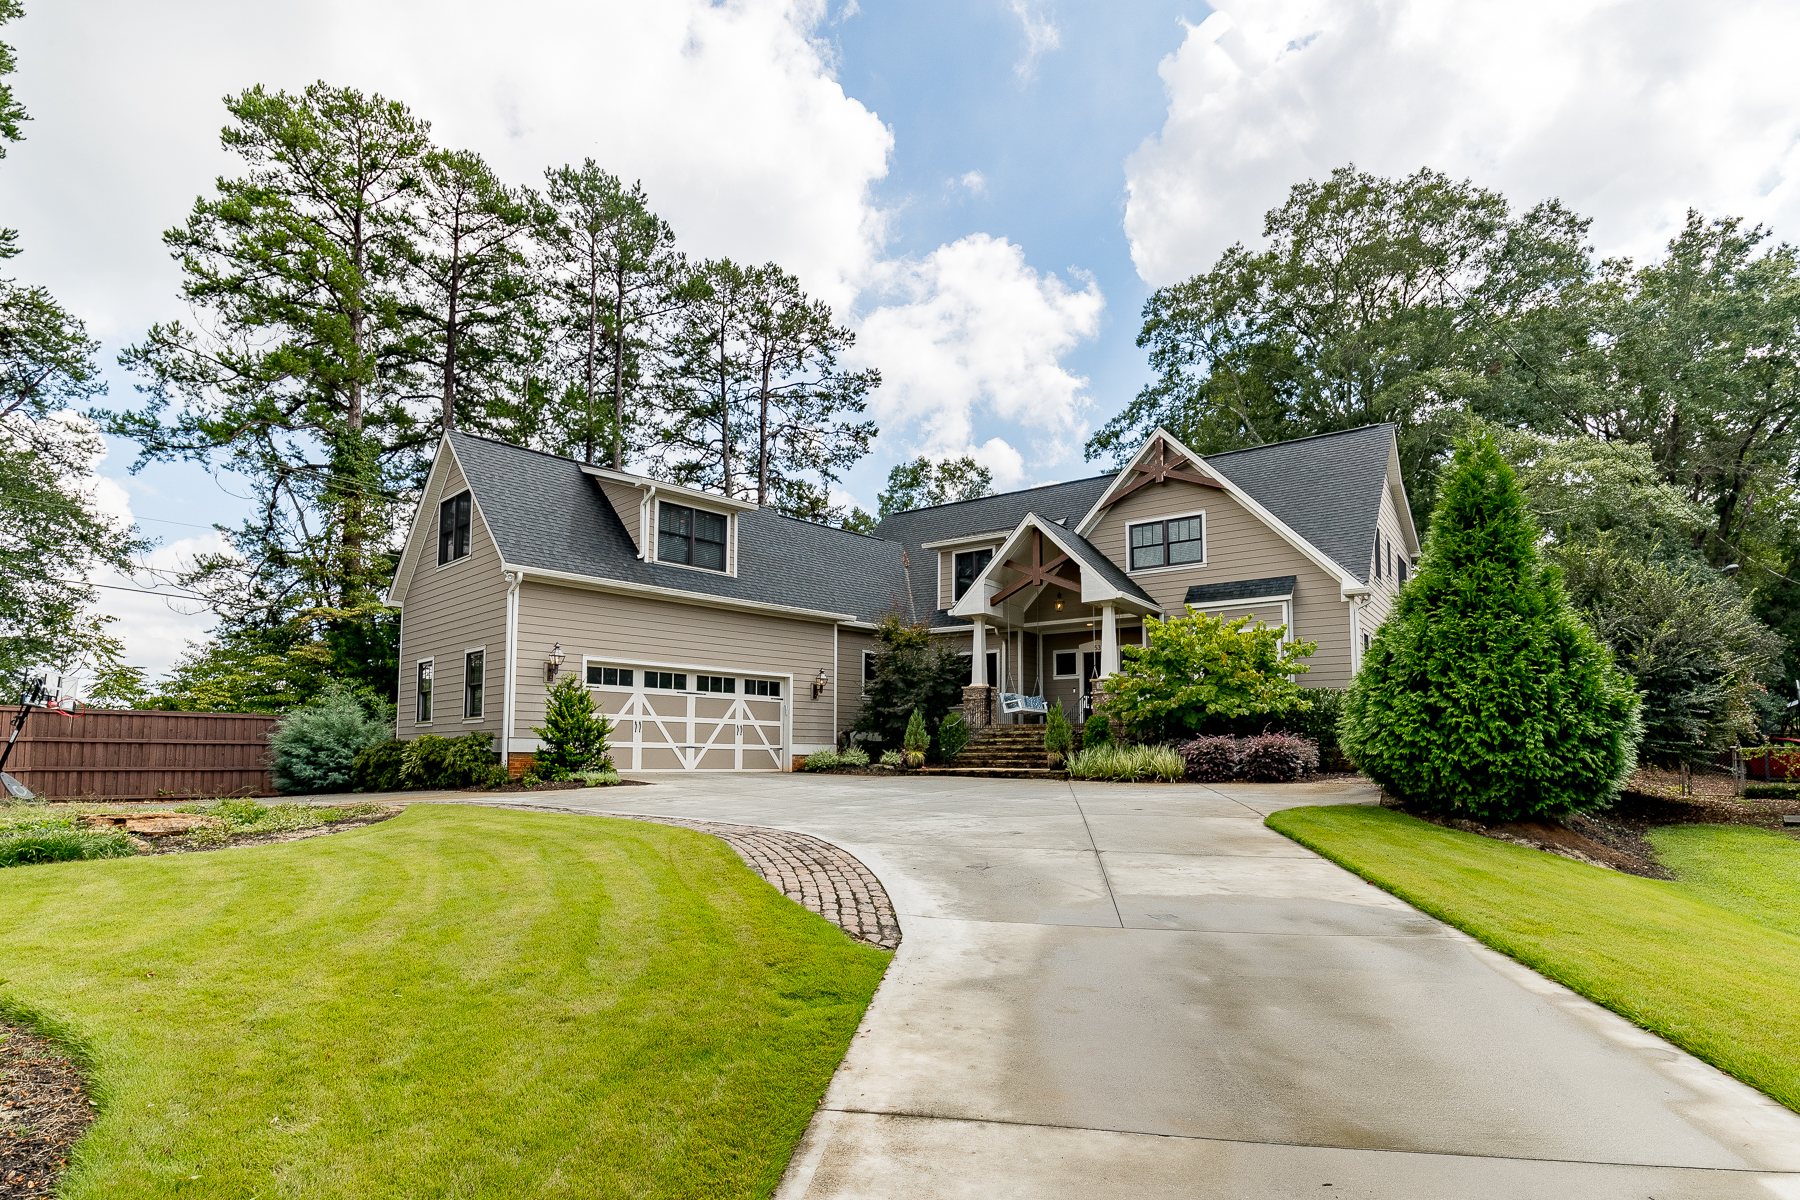 Single Family Homes for Active at Custom Built Cleveland Forest Home 53 Partridge Lane Greenville, South Carolina 29601 United States